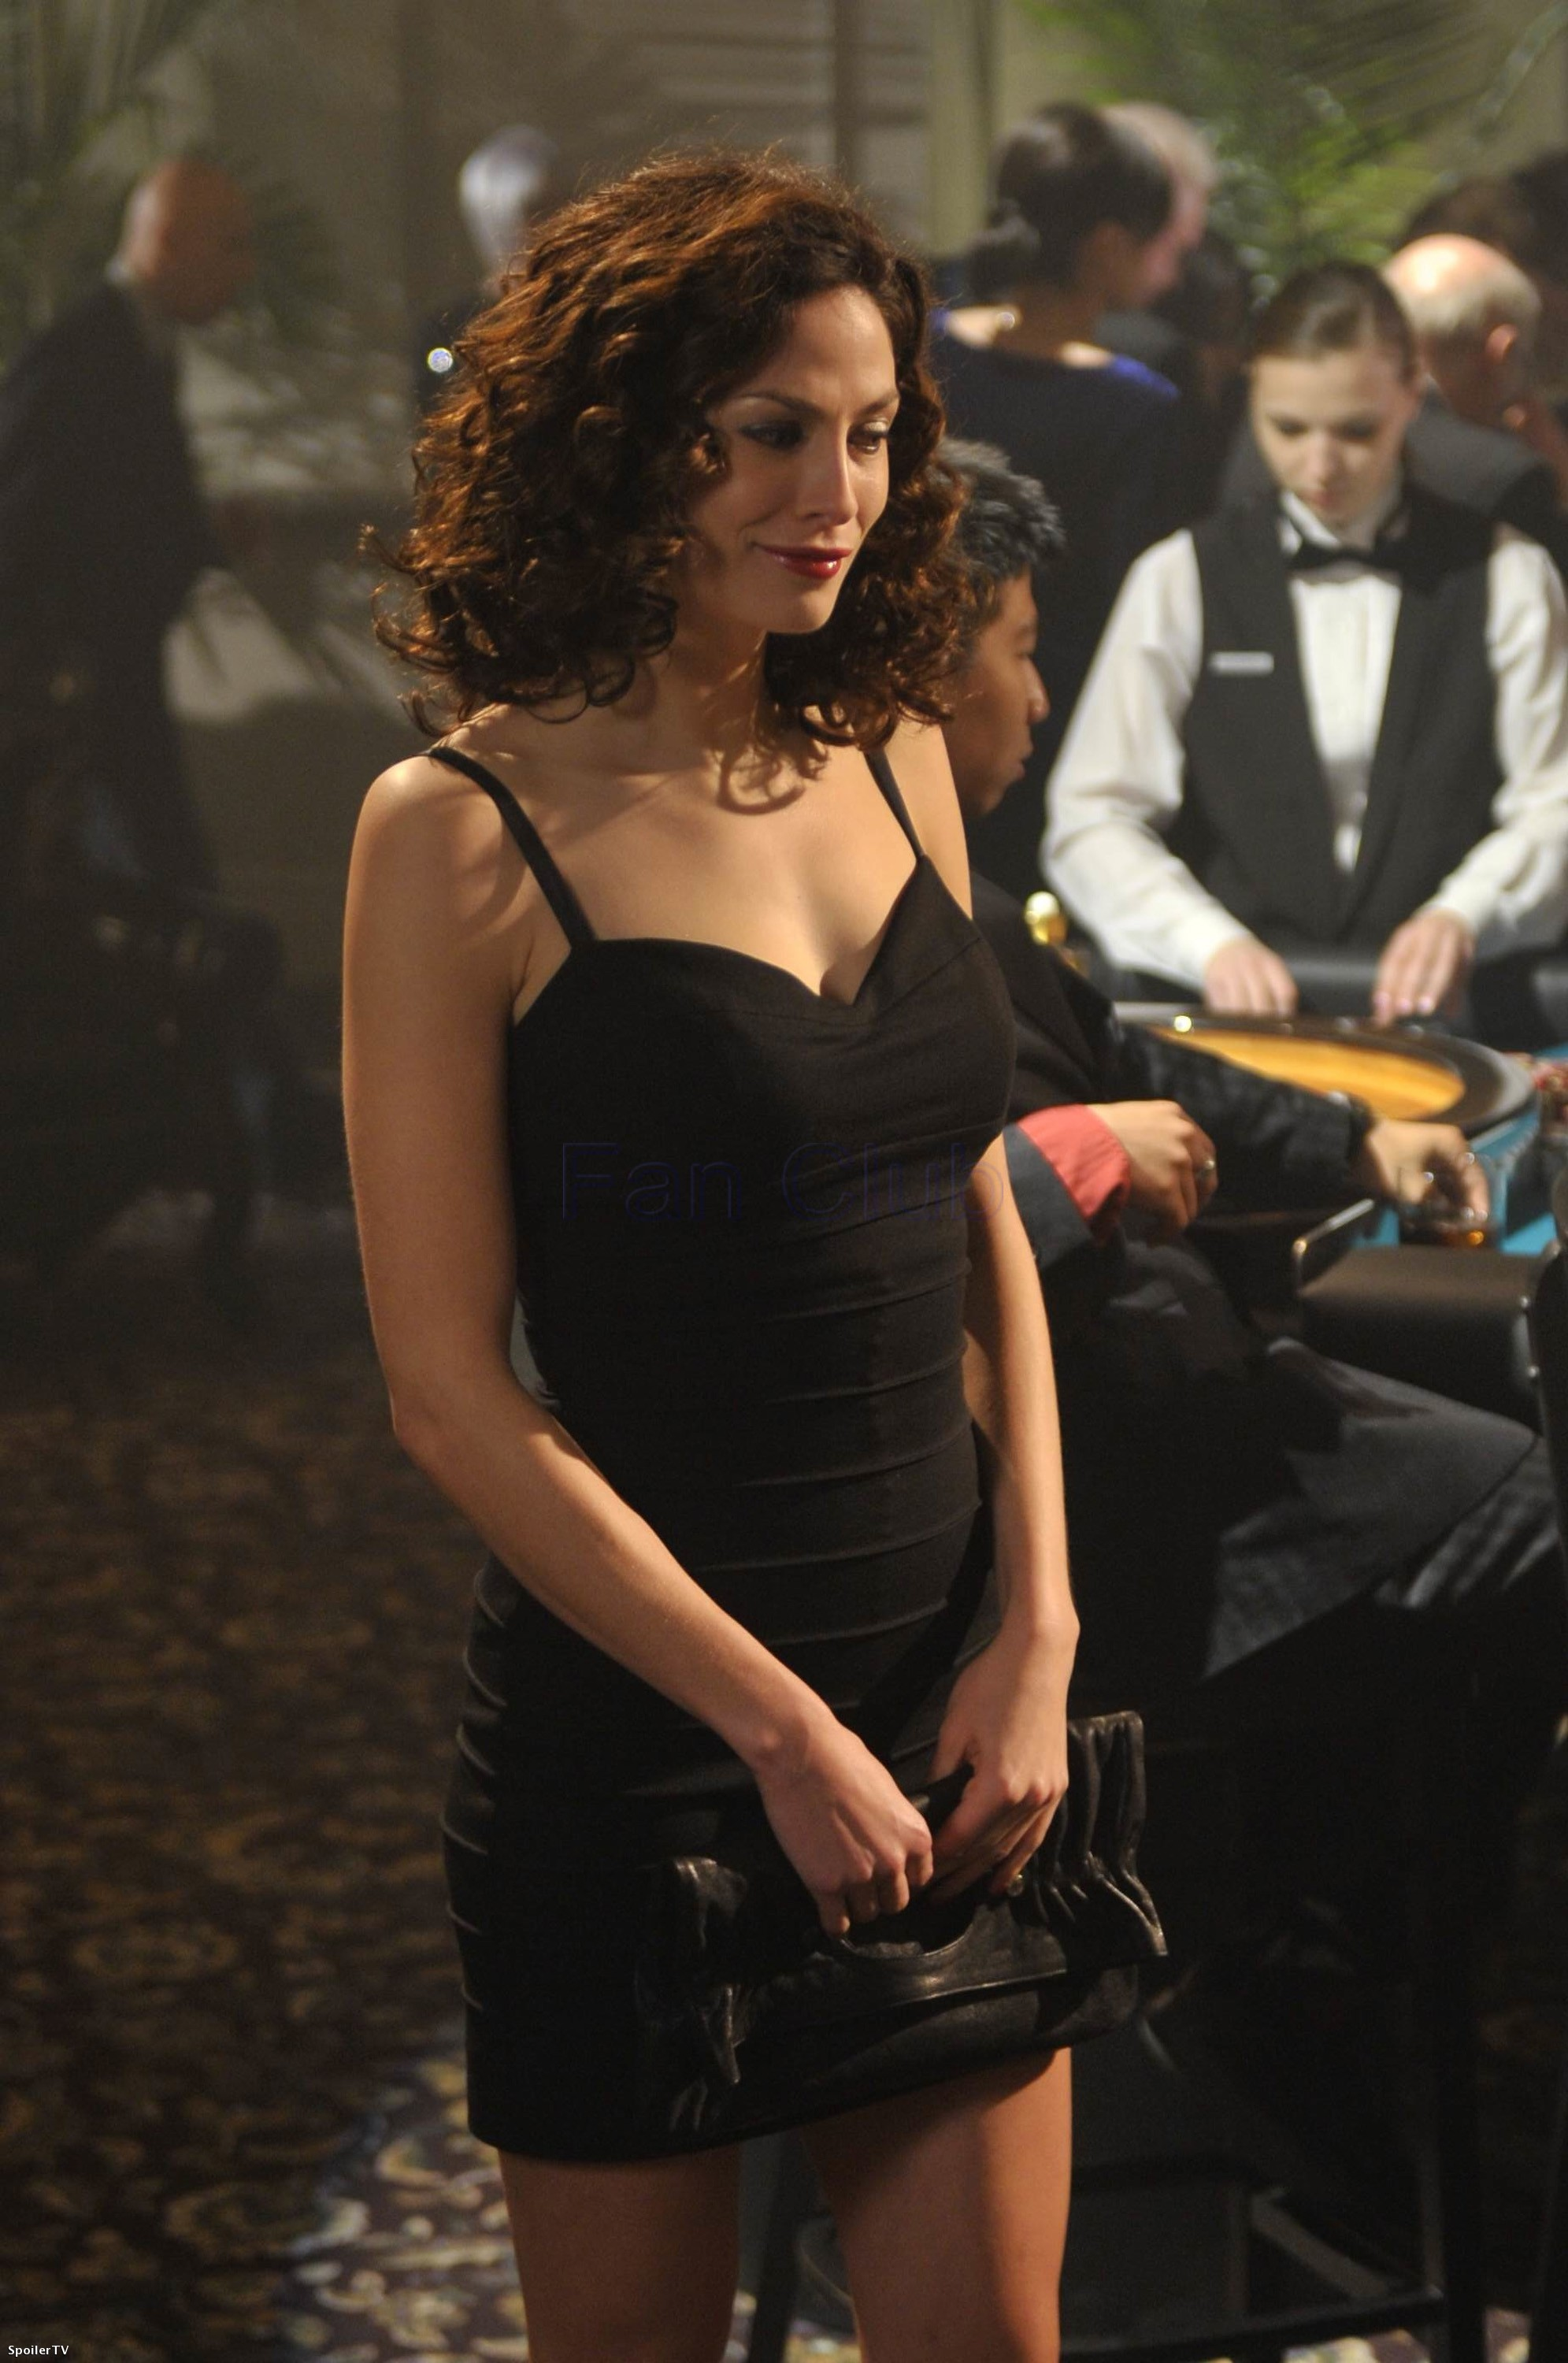 joanne-kelly-warehouse-13